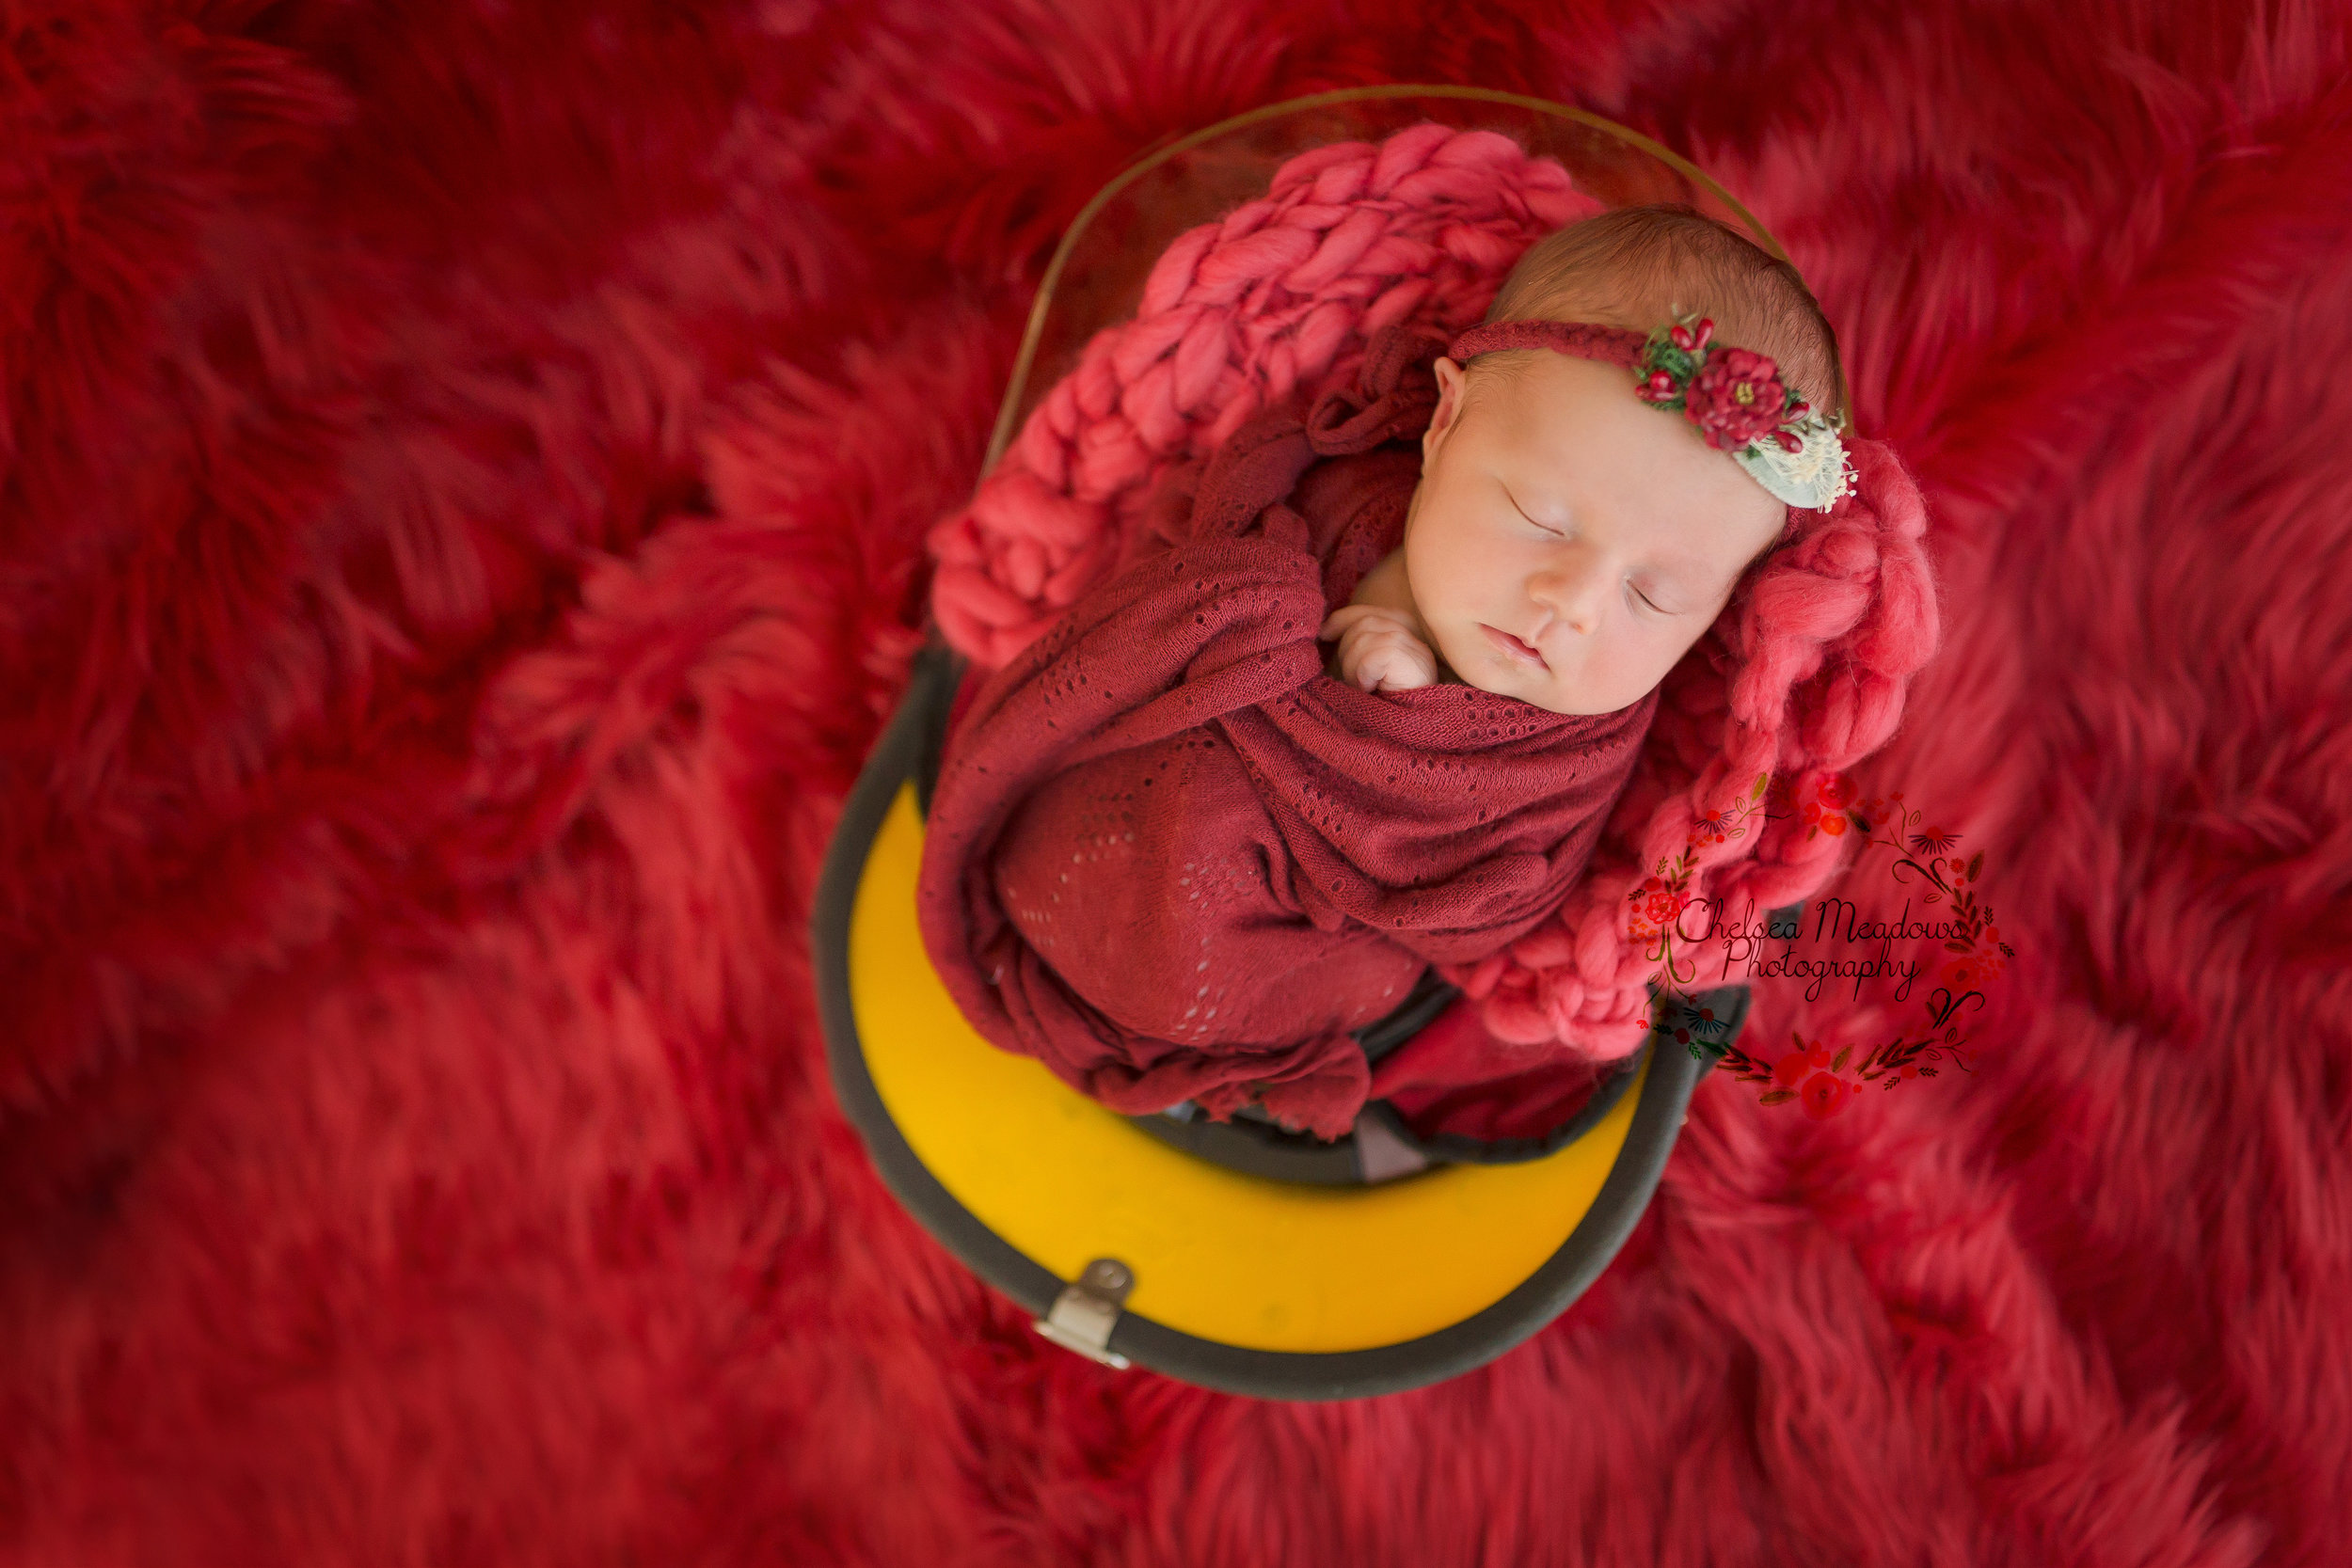 Marley Newborn Photos - Nashville Newborn Photographer - Chelsea Meadows Photography (12)_edited-1.jpg